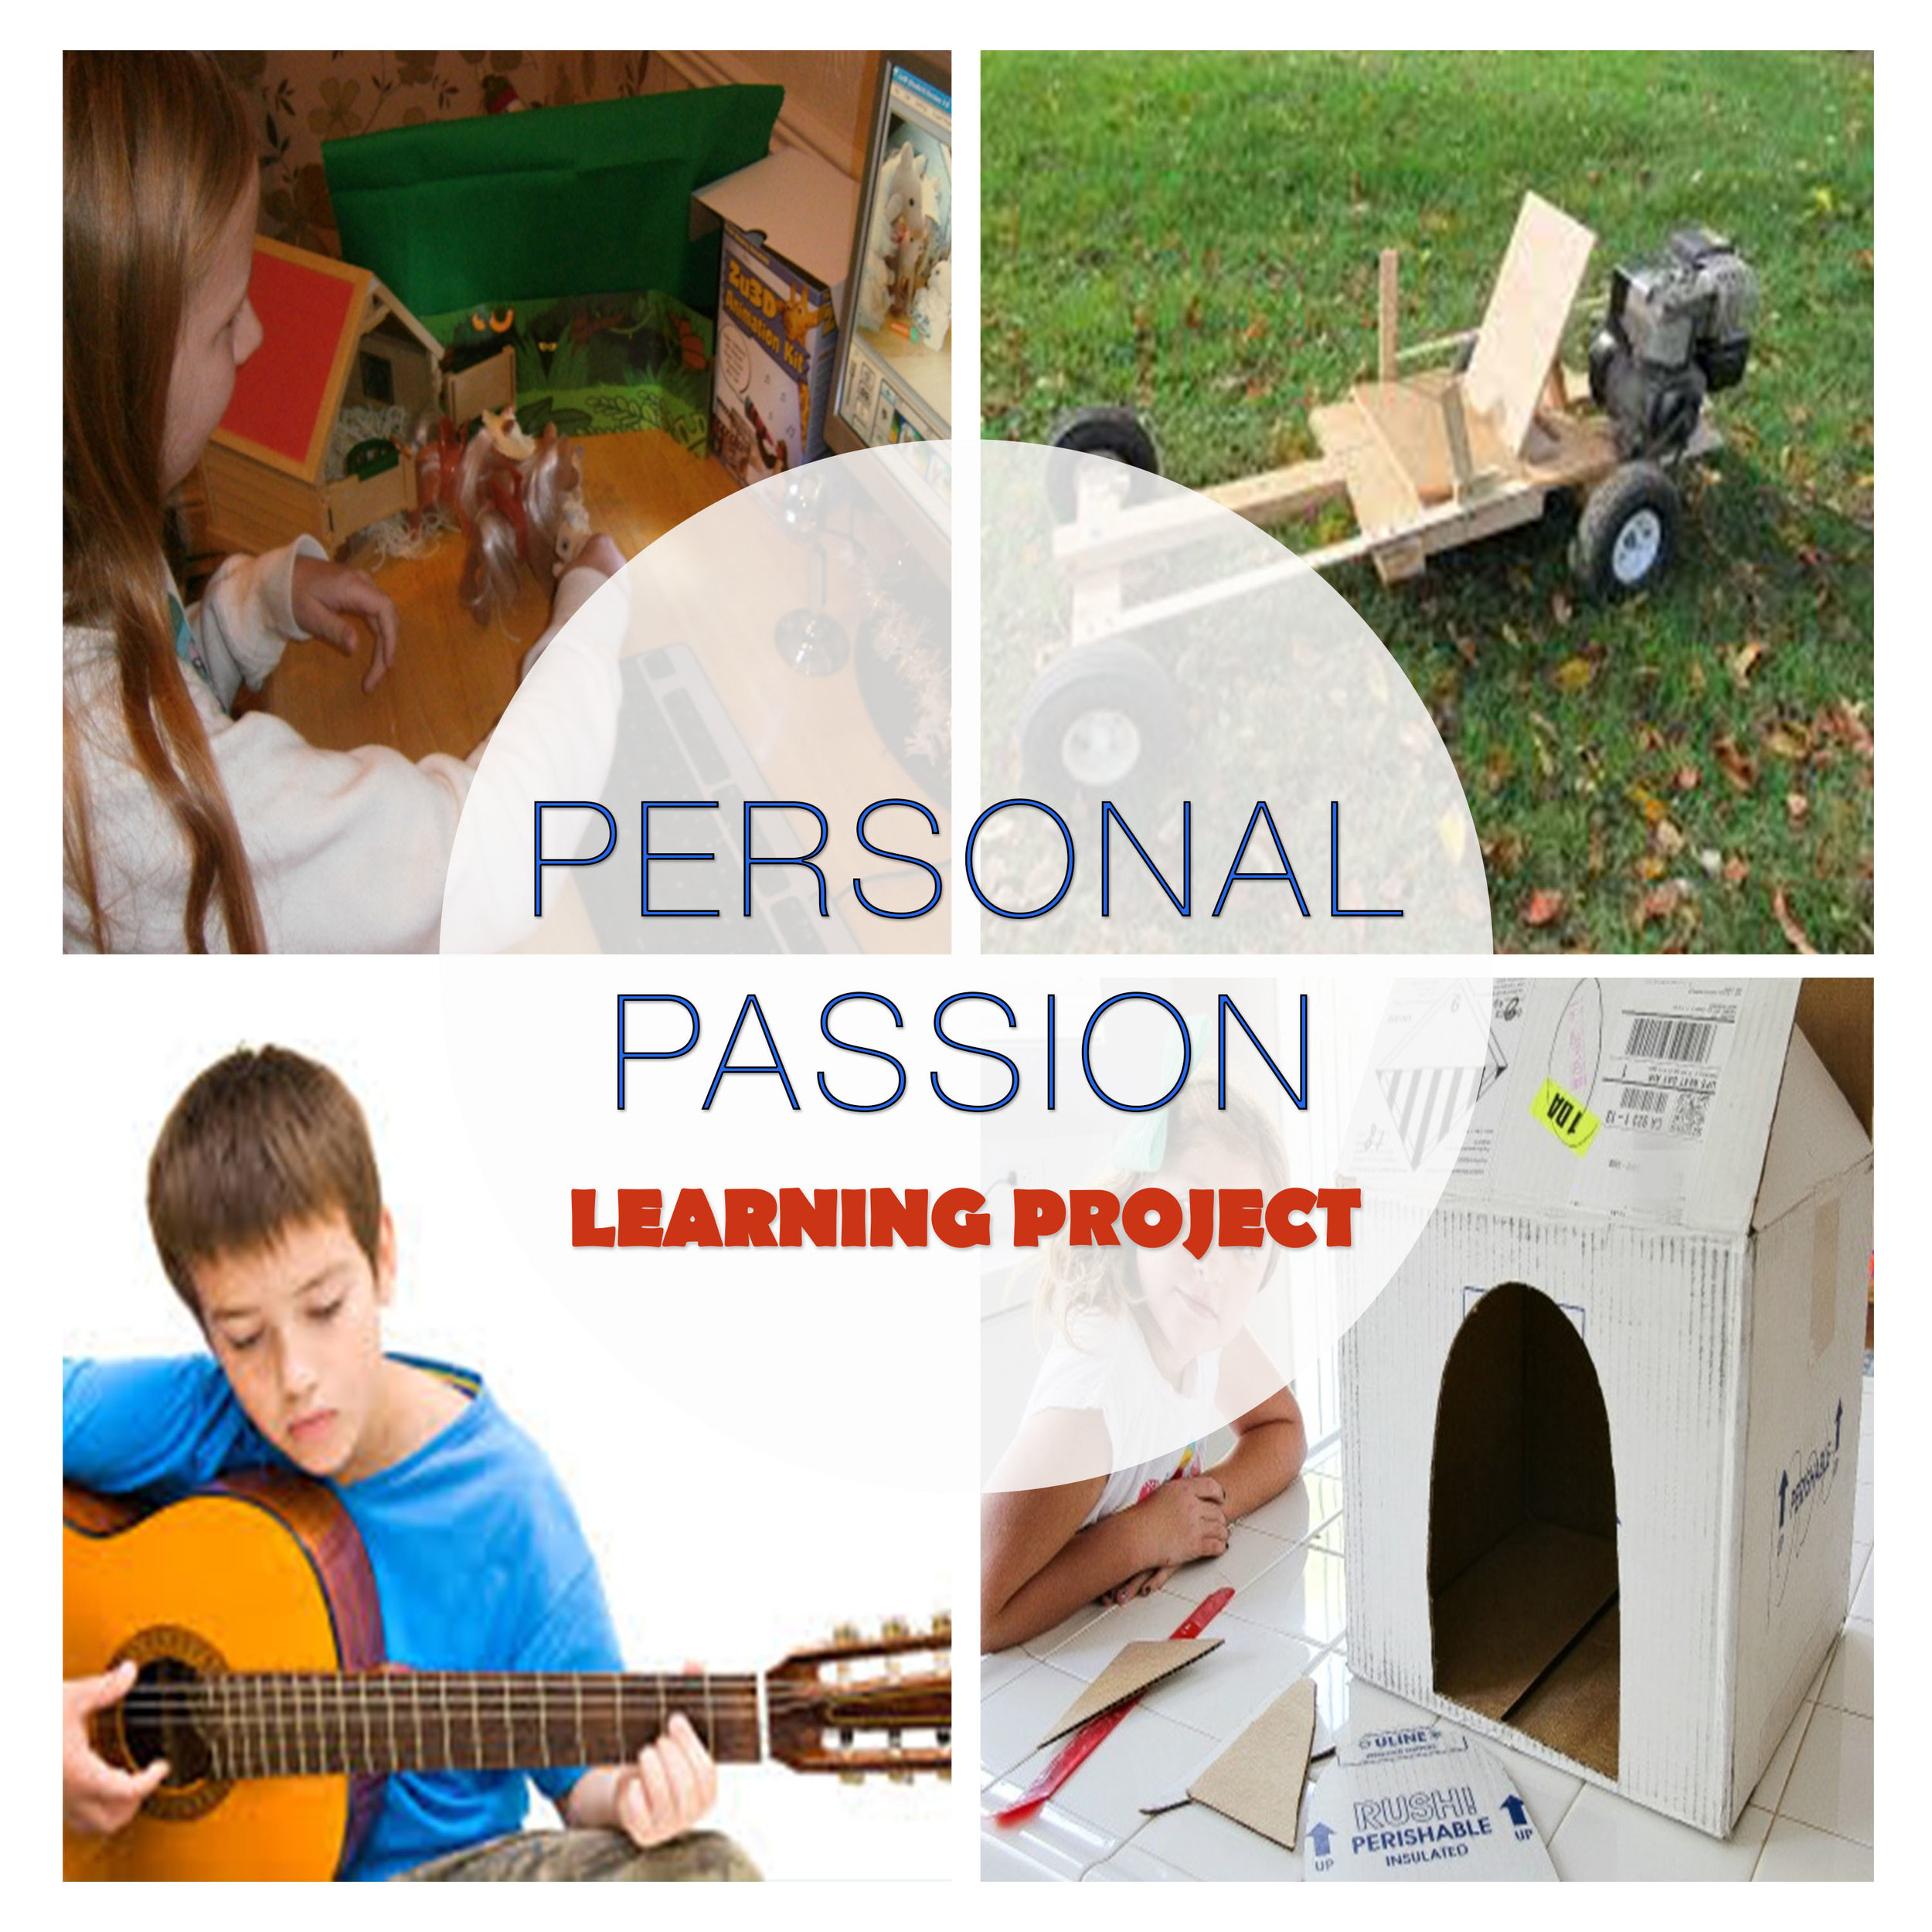 IT'S ALL HERE - A complete unit of work on PASSION PROJECTS for teachers and students. NO PREP REQUIRED.Your students will be super ENGAGED working on PERSONALISED LEARNING TASKS they are PASSIONATE ABOUT. OVER 50 PAGES OF CONTENT, RESOURCES AND ASSESSMENT TOOLS.